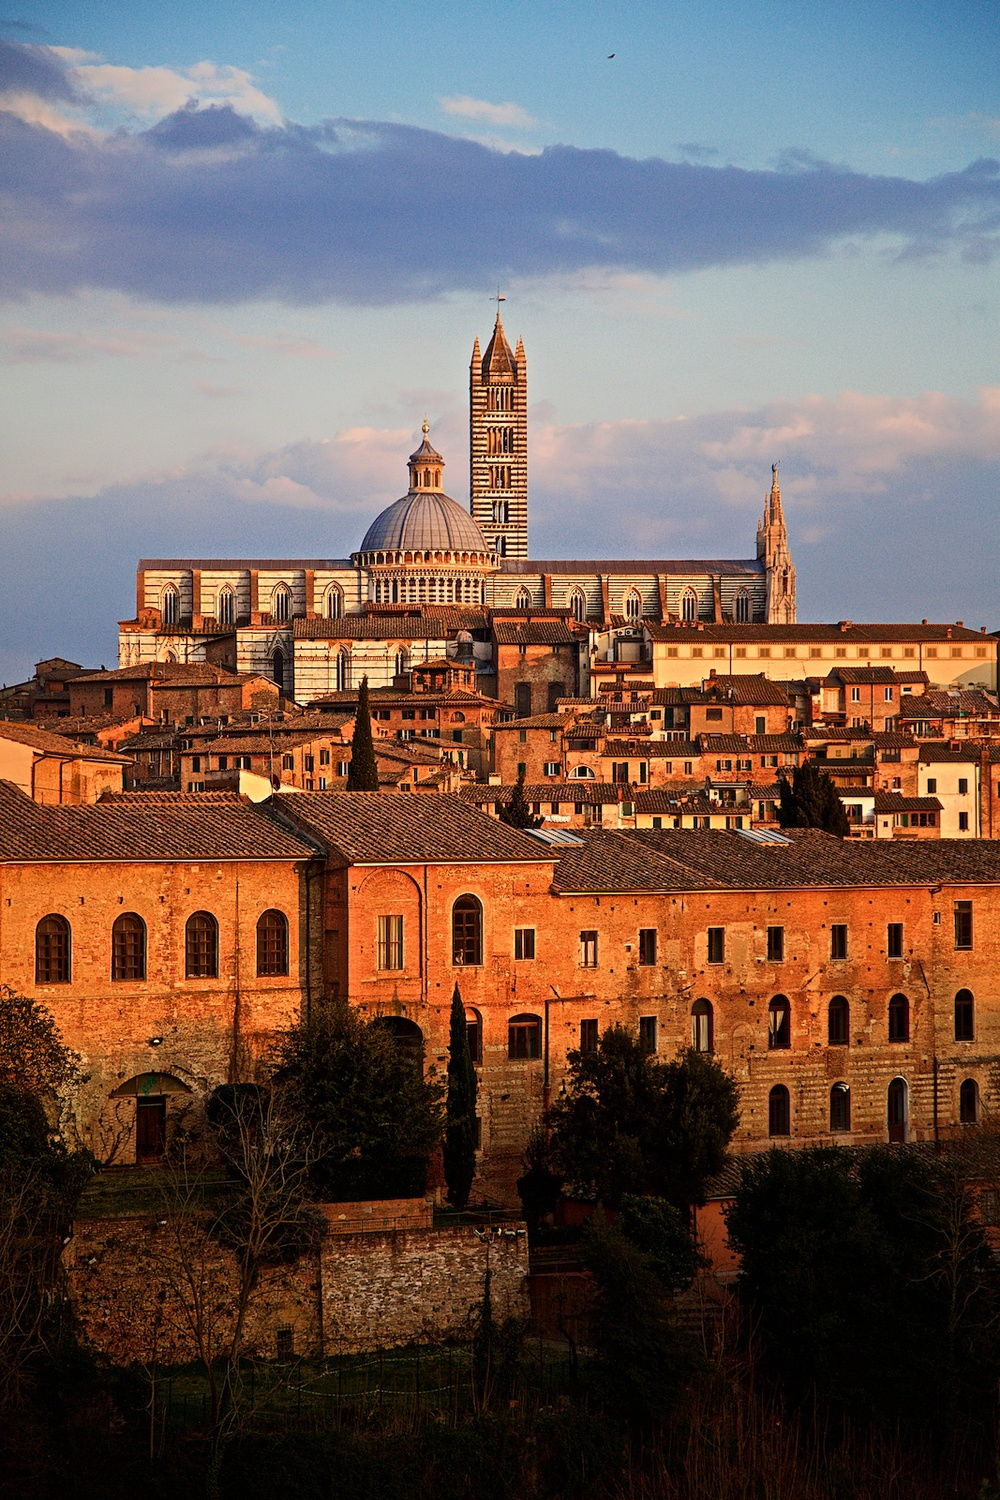 roofs-of-siena-toscana-tuscany-denis-bosnic-photography- 14.jpg